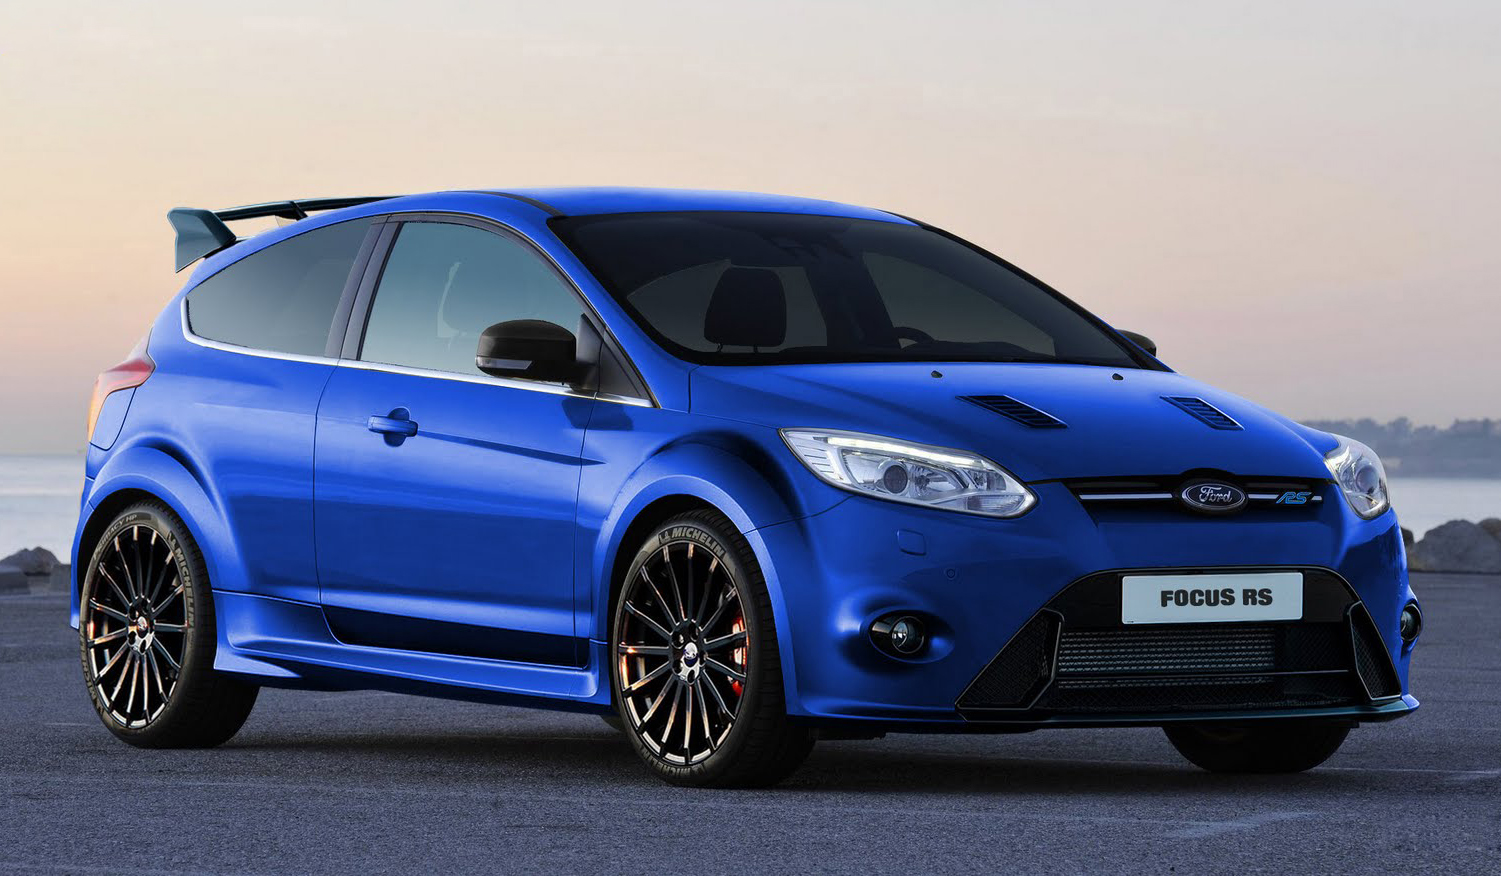 2014 ford focus rs more dynamic in design with eco friendly features. Black Bedroom Furniture Sets. Home Design Ideas